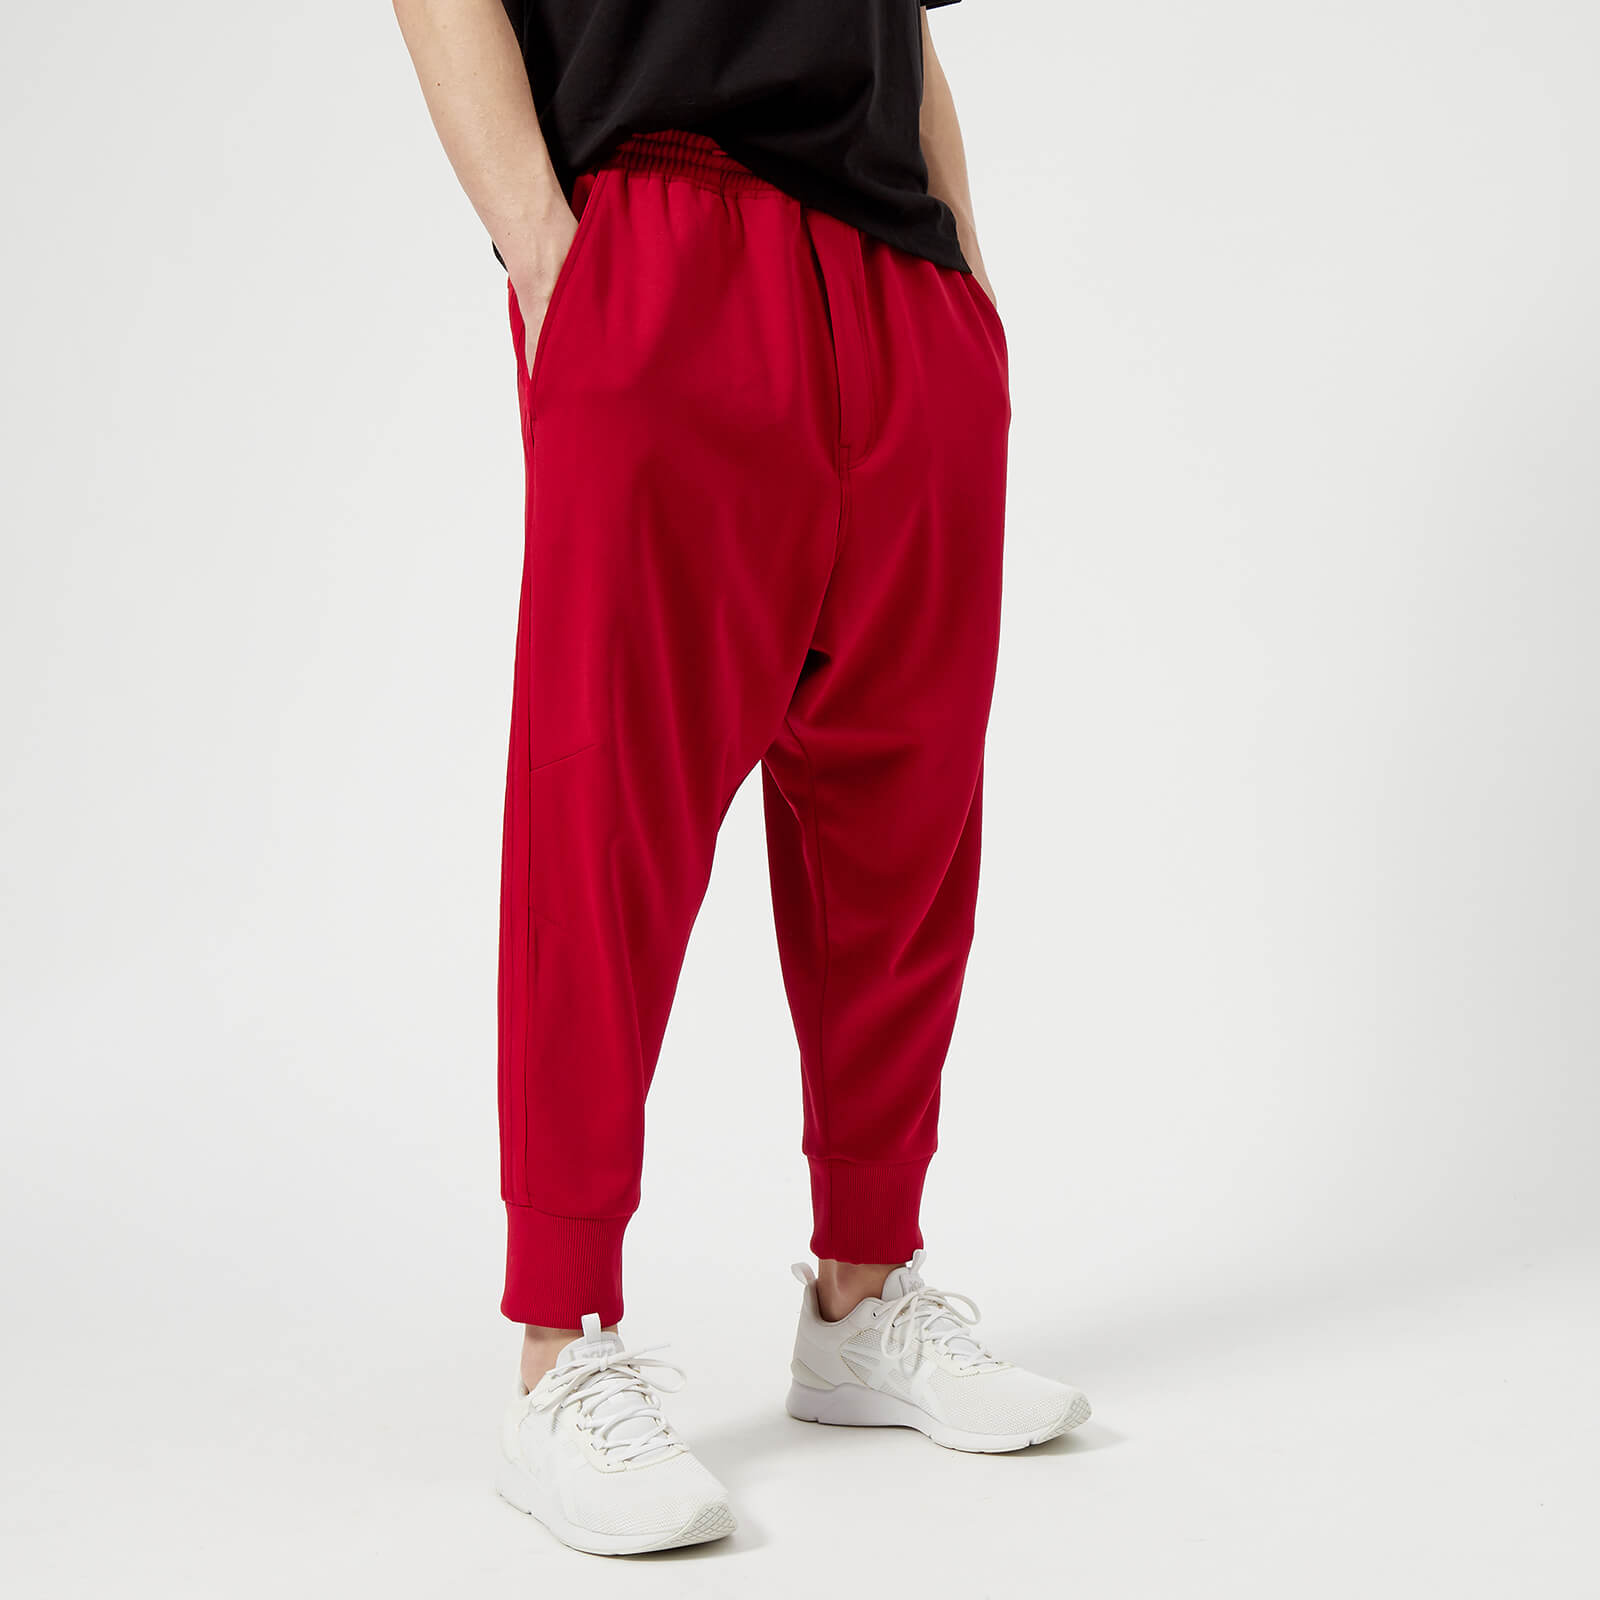 Y-3 Men s 3 Stripe Track Pants - Chili Pepper Undyed - Free UK Delivery  over £50 b2e6d8eda6a3f